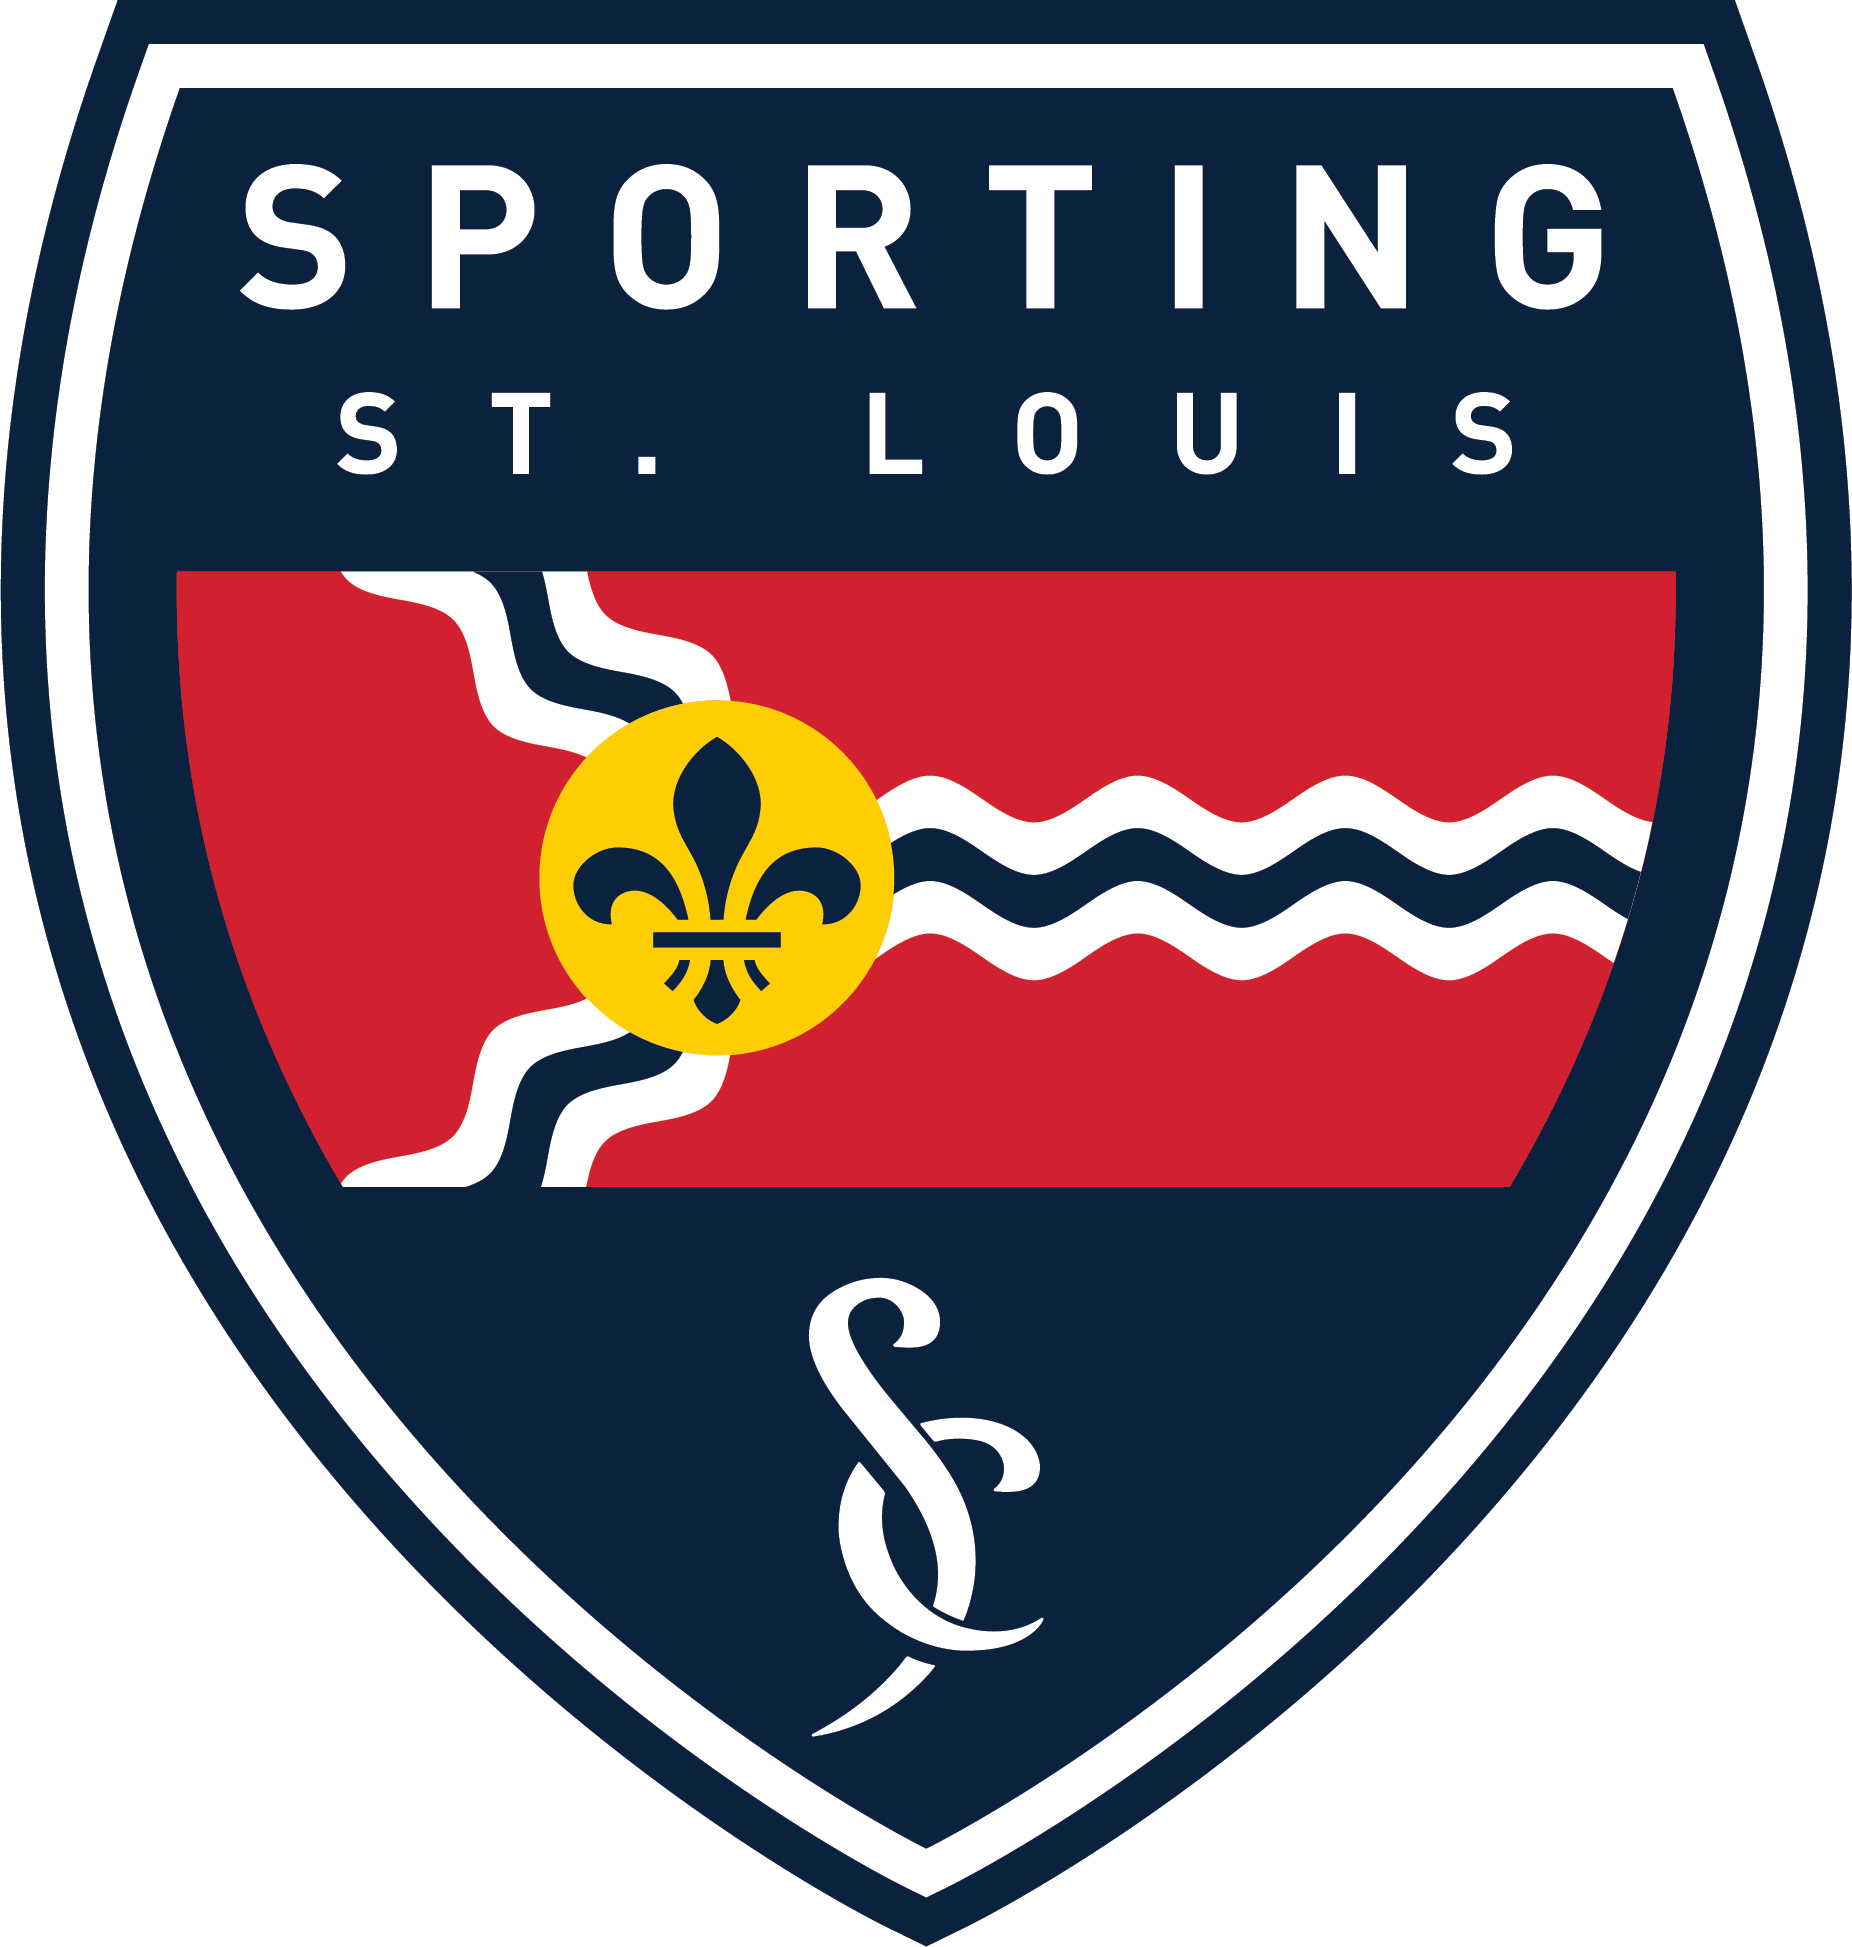 Sporting St. Louis